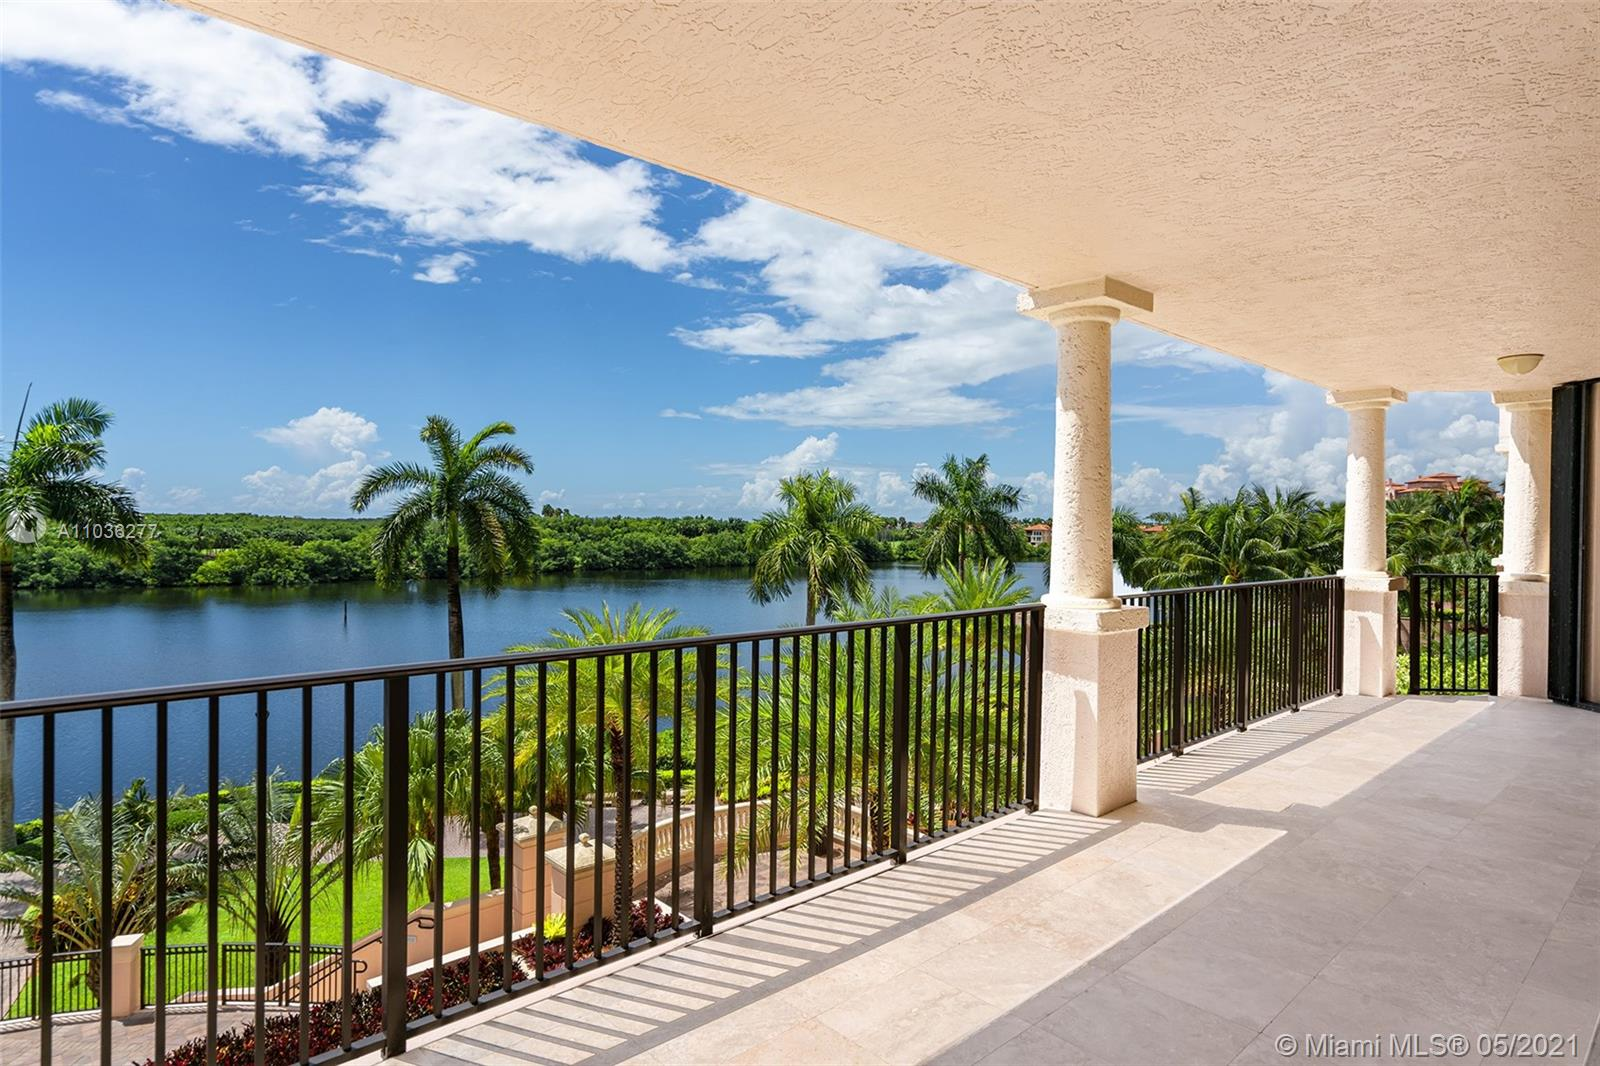 Paradise found! Located in the Siena building of the Prestigious Deering Bay Yacht & Country Club this 3 bedroom, 3 bath condo features breathtaking bay views. Luxurious Golf Course lifestyle with first-class amenities including pool, boat dock, fitness center, and clubhouse in a prime Coral Gables waterfront location. Exit the elevator into the private foyer to find high-end finishes throughout such as a marble eat-in kitchen, marble baths, and custom closets. Enjoy waterfront views from the large living and dining room. Laundry/utility room great for storage. 2 Parking spots.